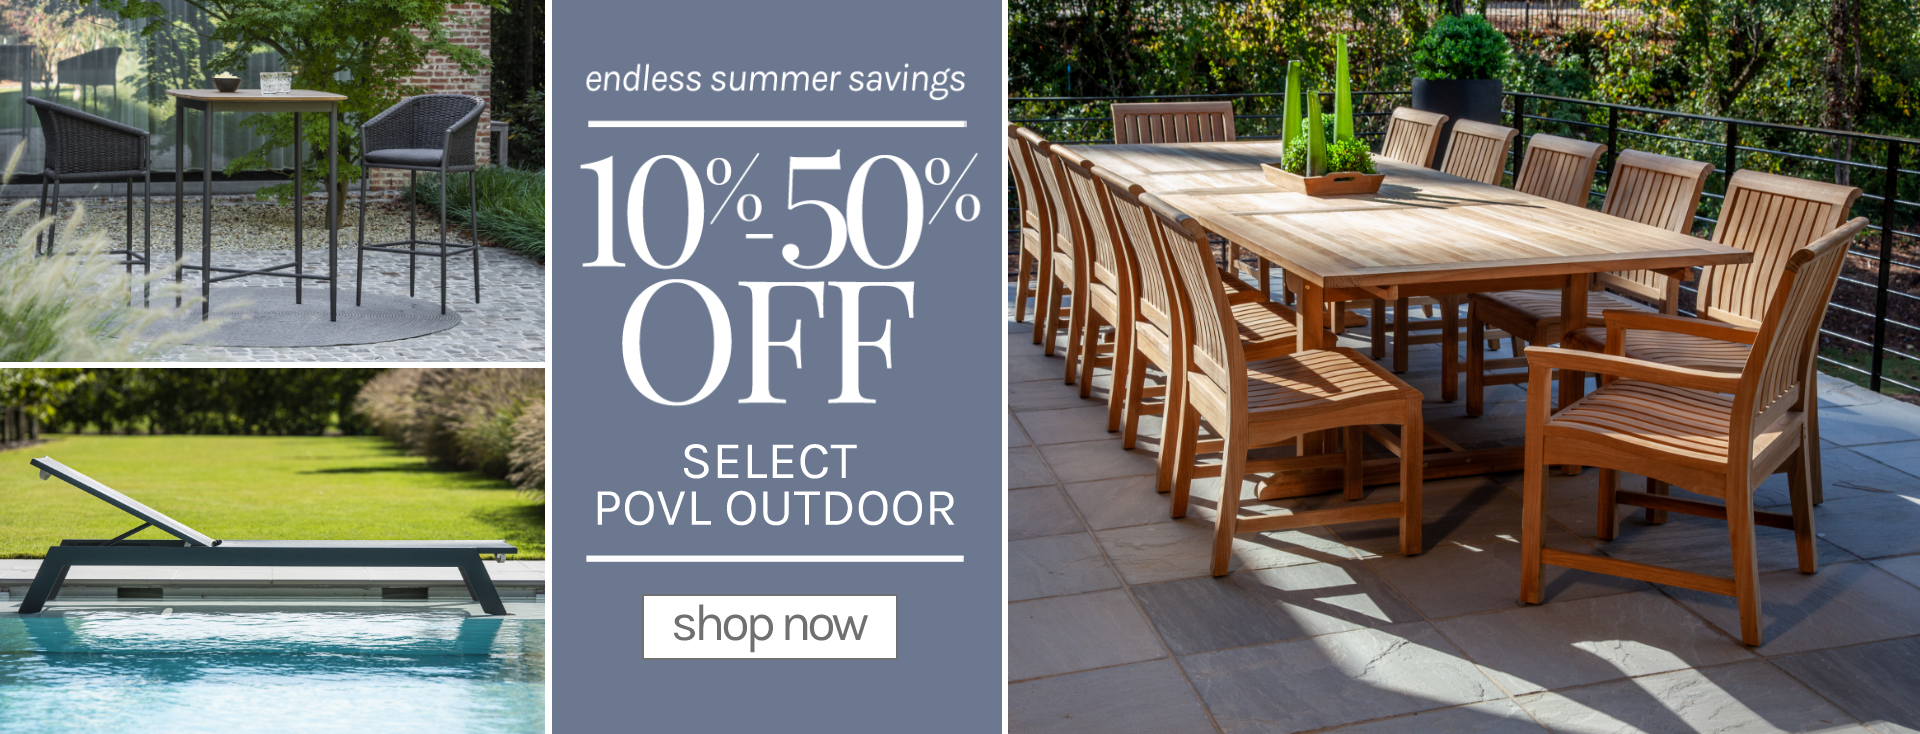 endless summer savings 10% - 50% off select povl outdoor shop now